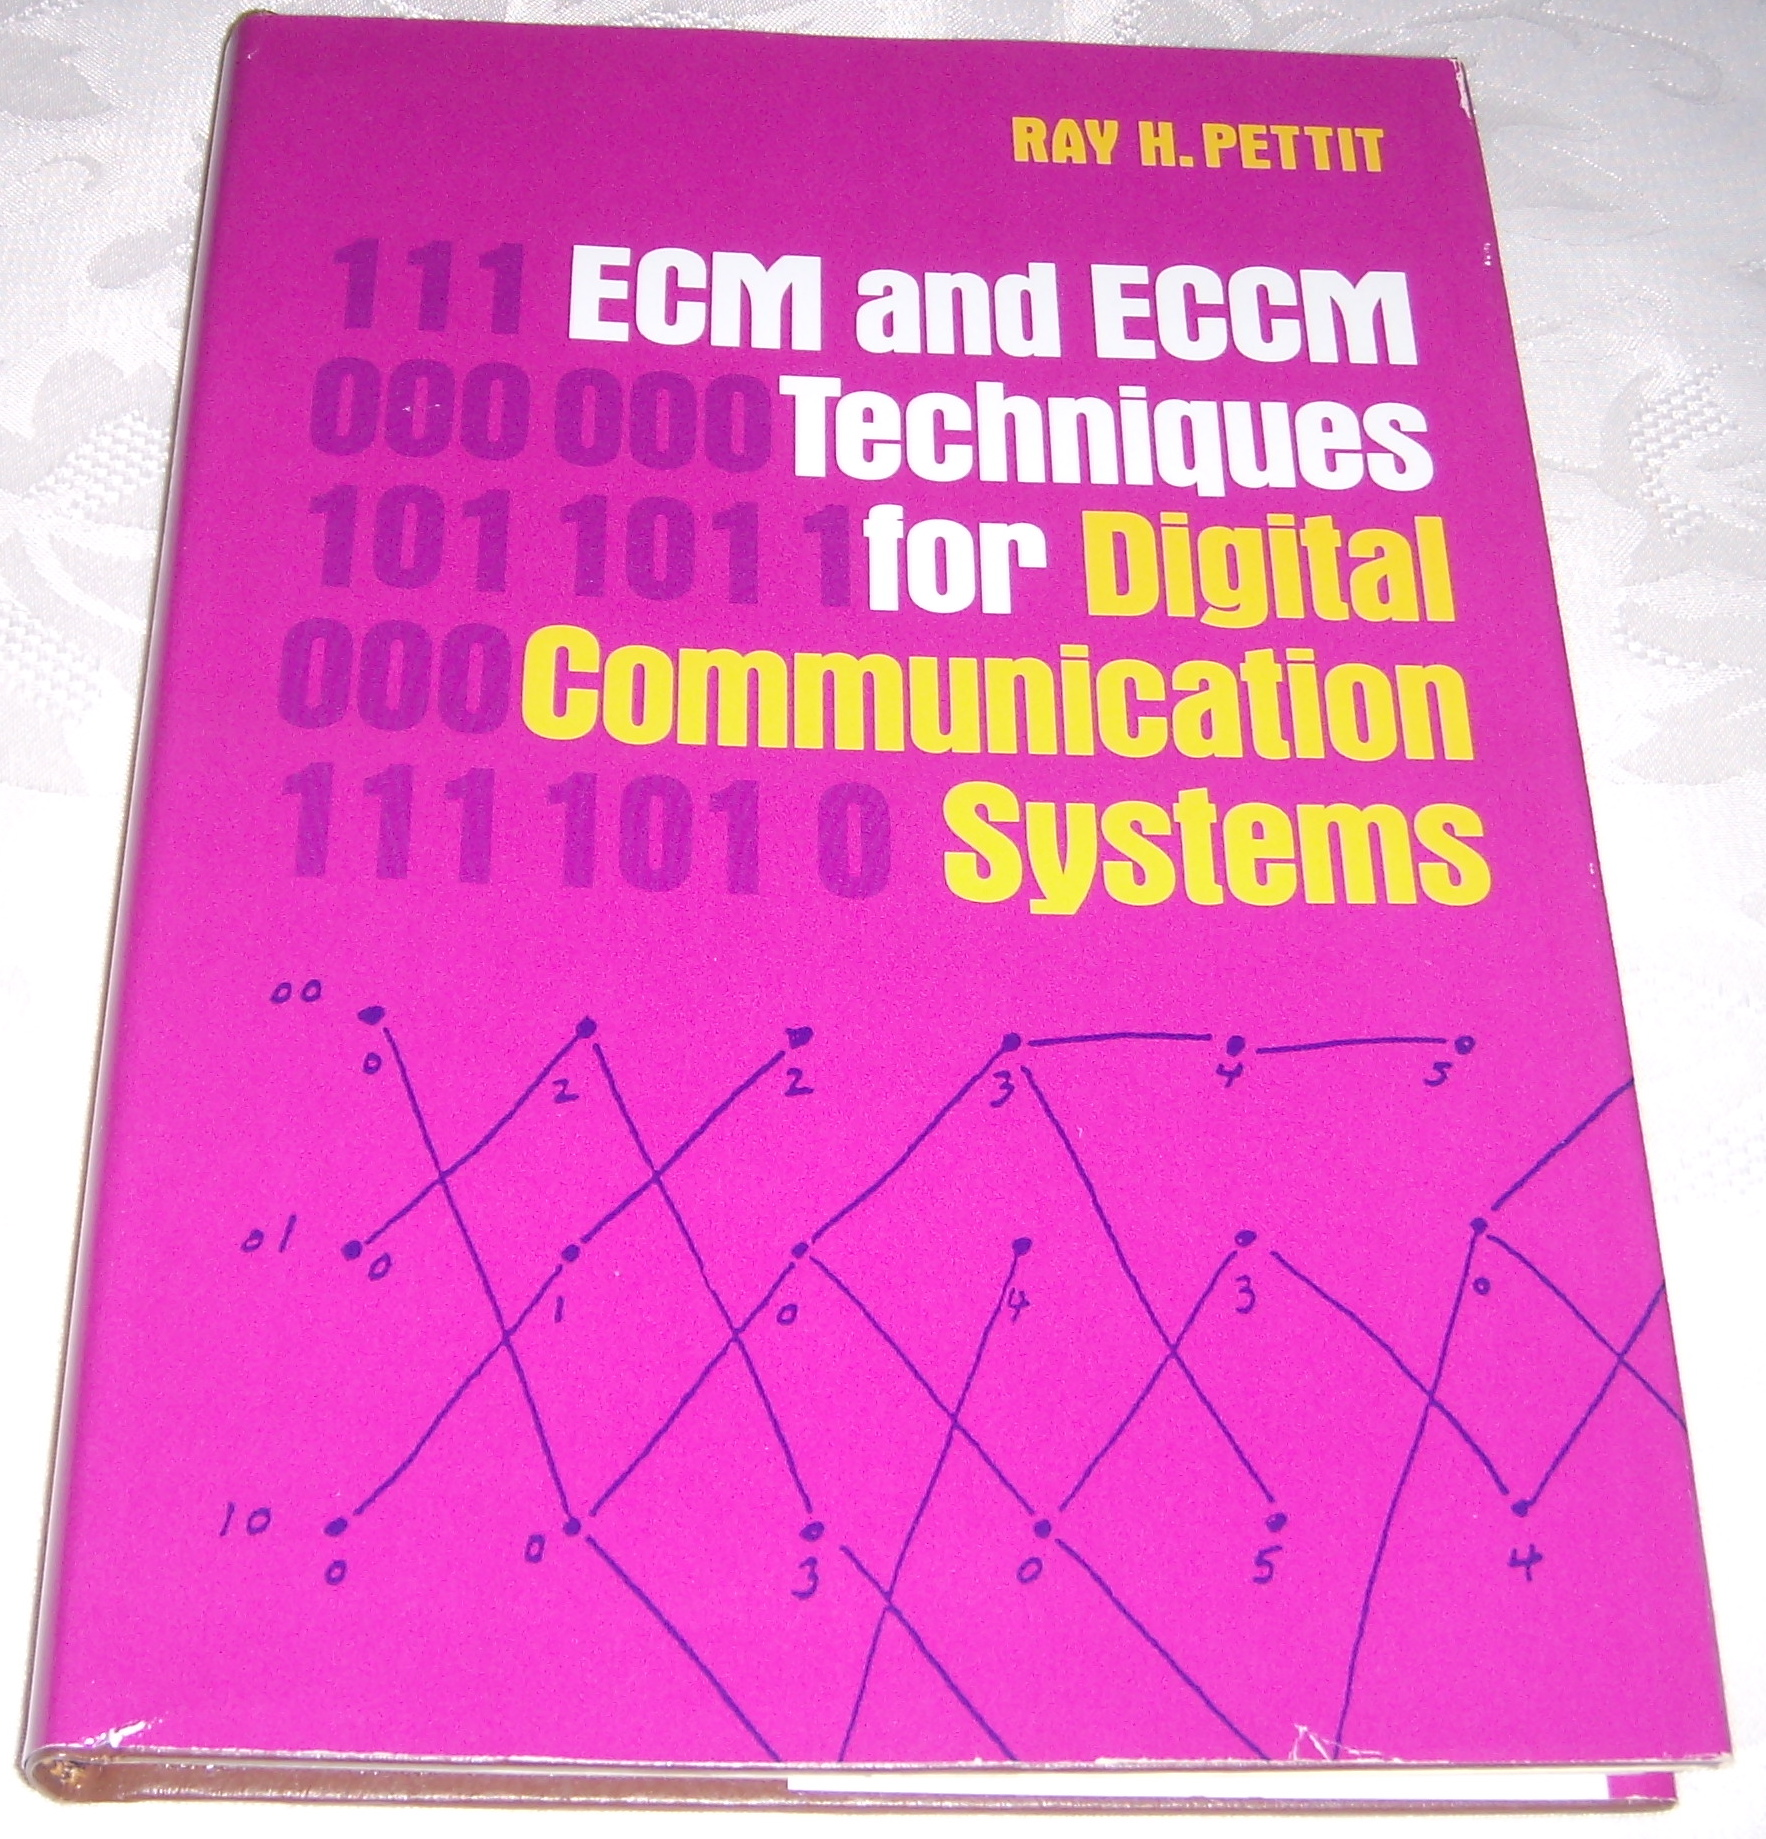 ECM AND ECCM Techniques for Digital Communication Systems